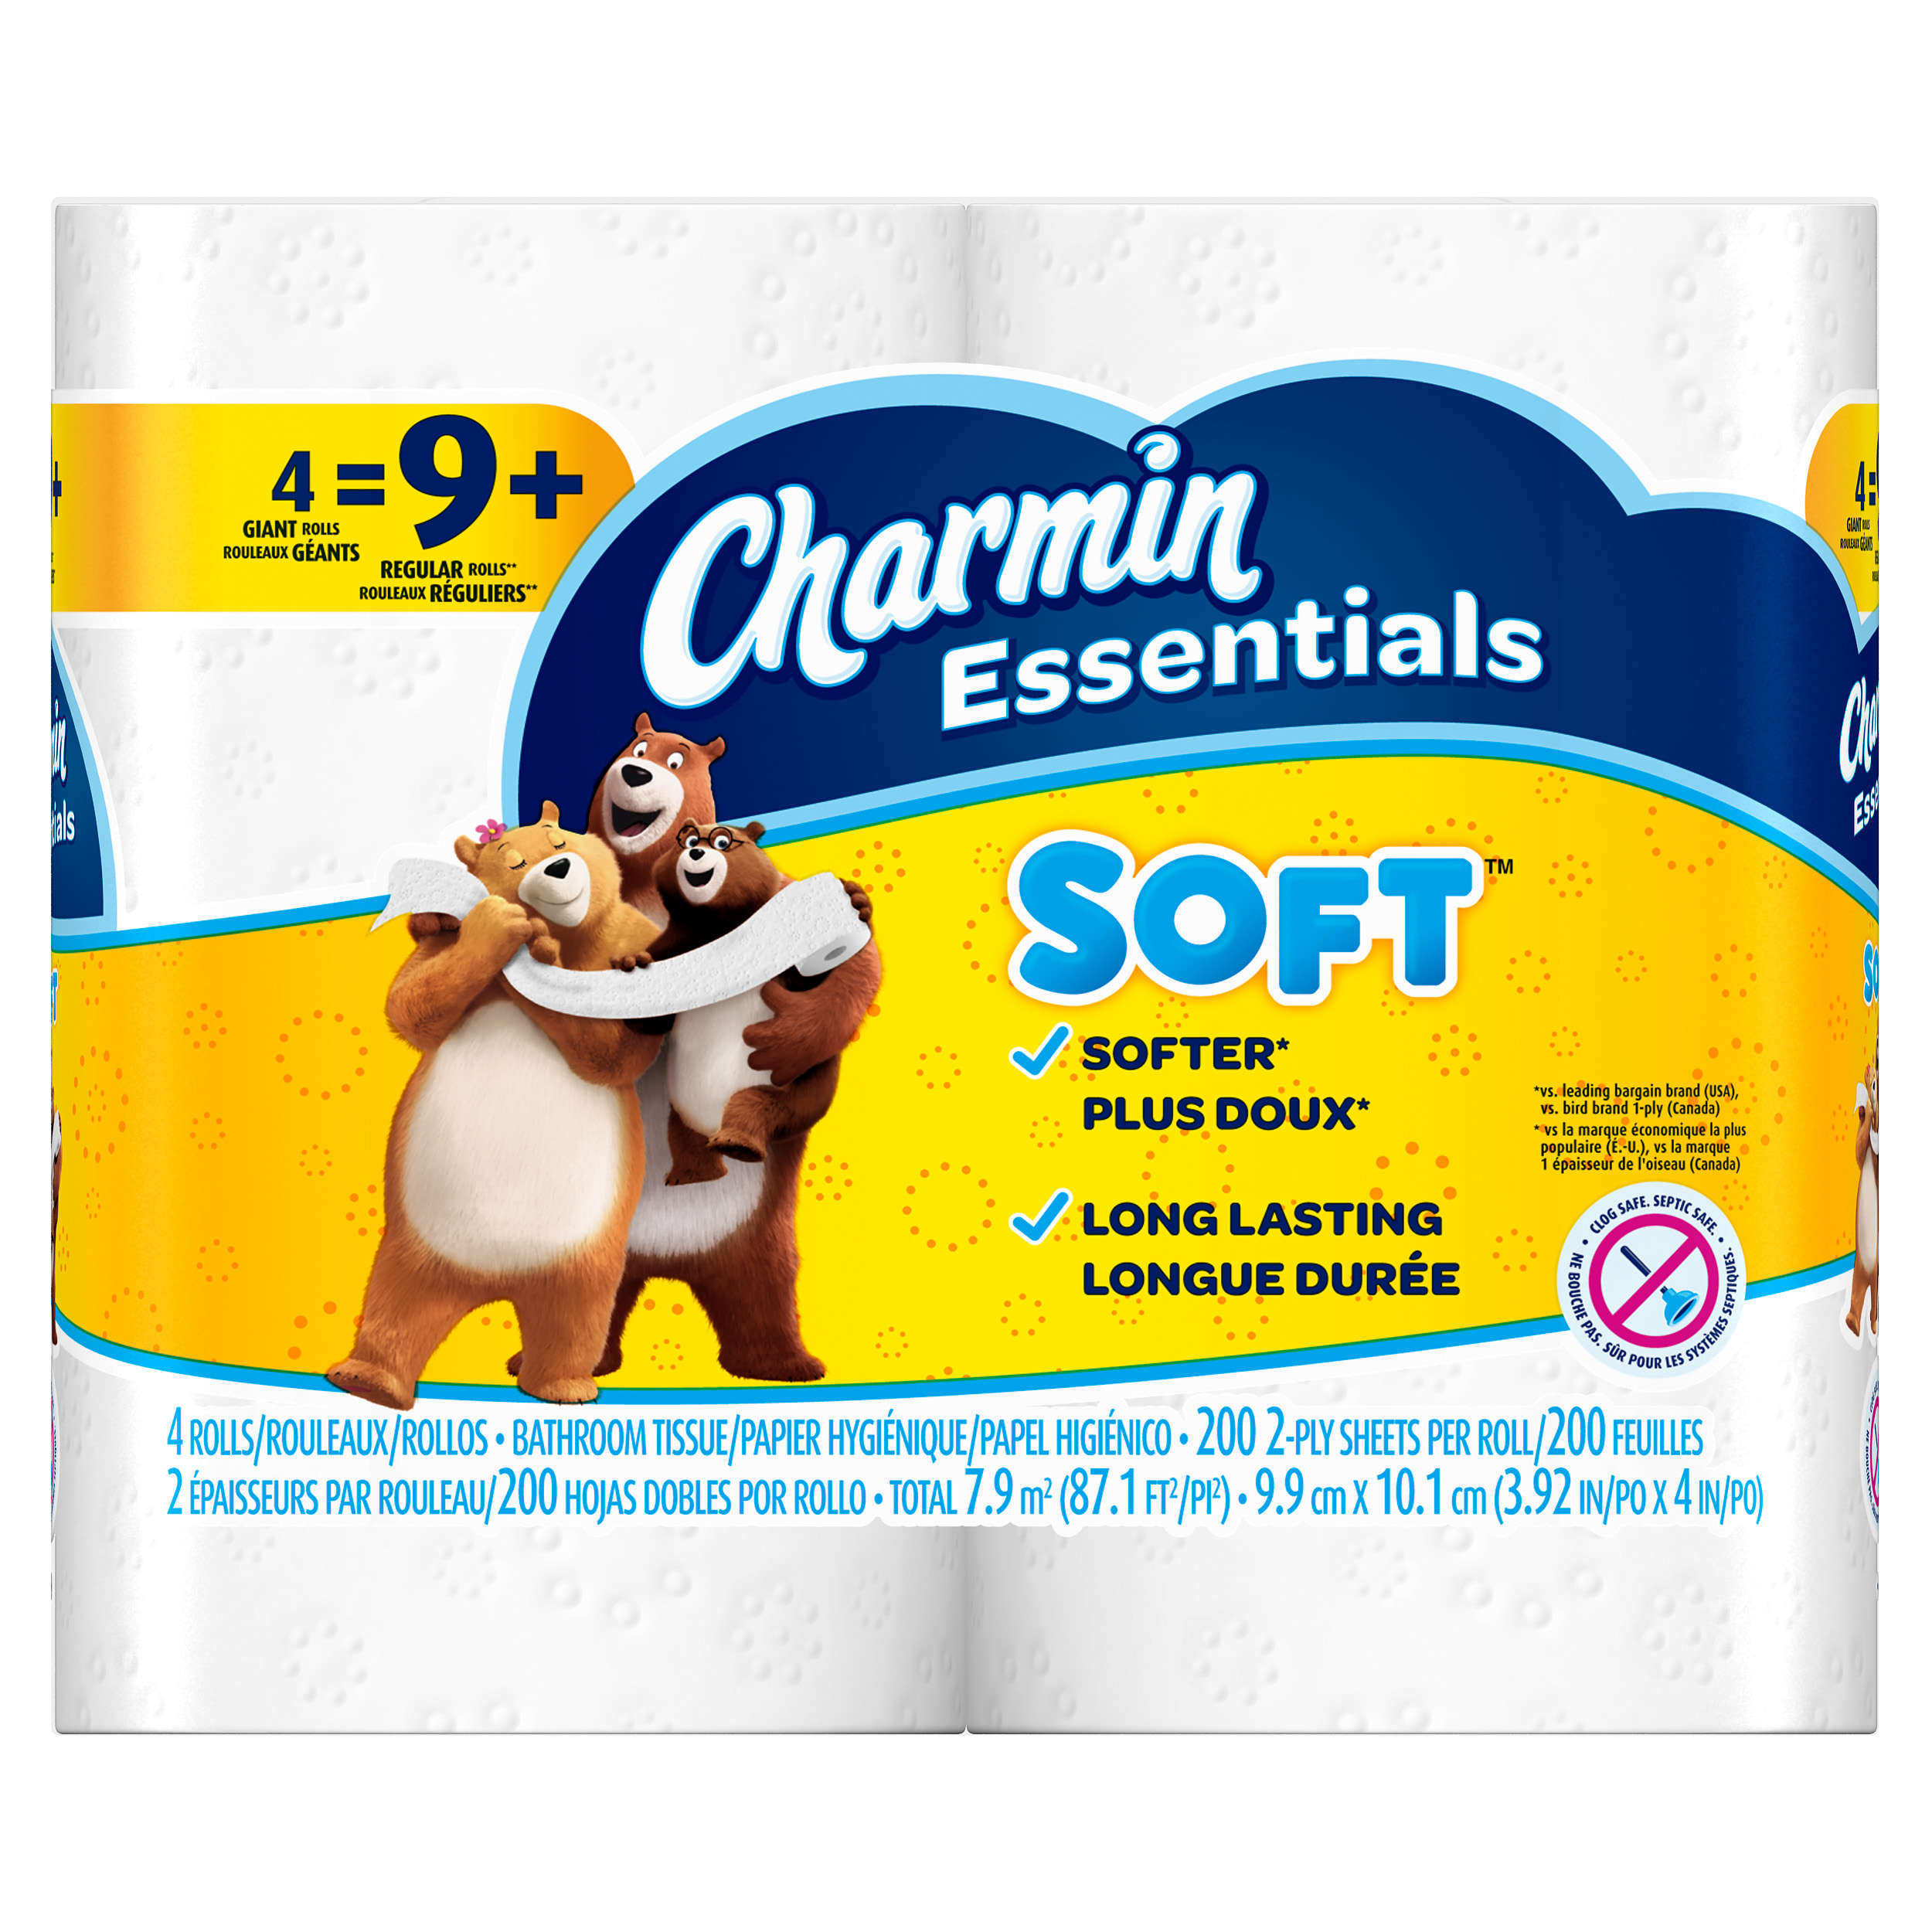 Charmin Essentials Toilet Paper, Soft, 4 Giant Rolls